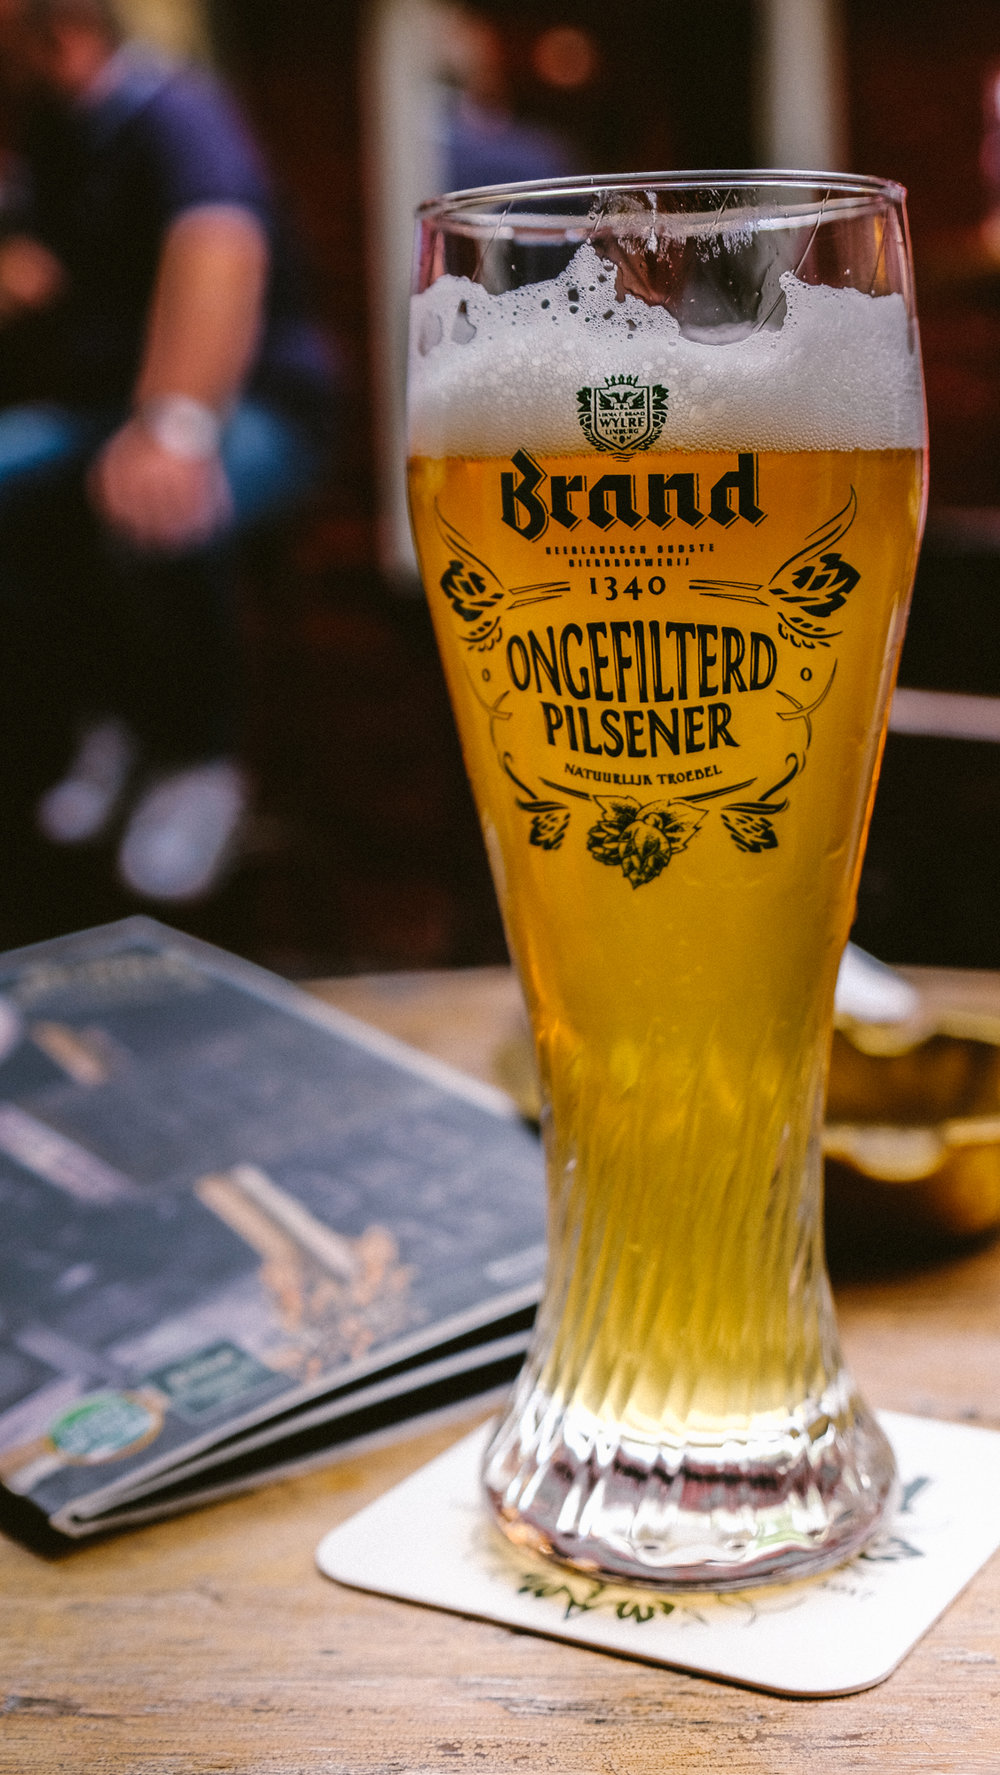 popular dutch beer company brand makes unfiltered beer